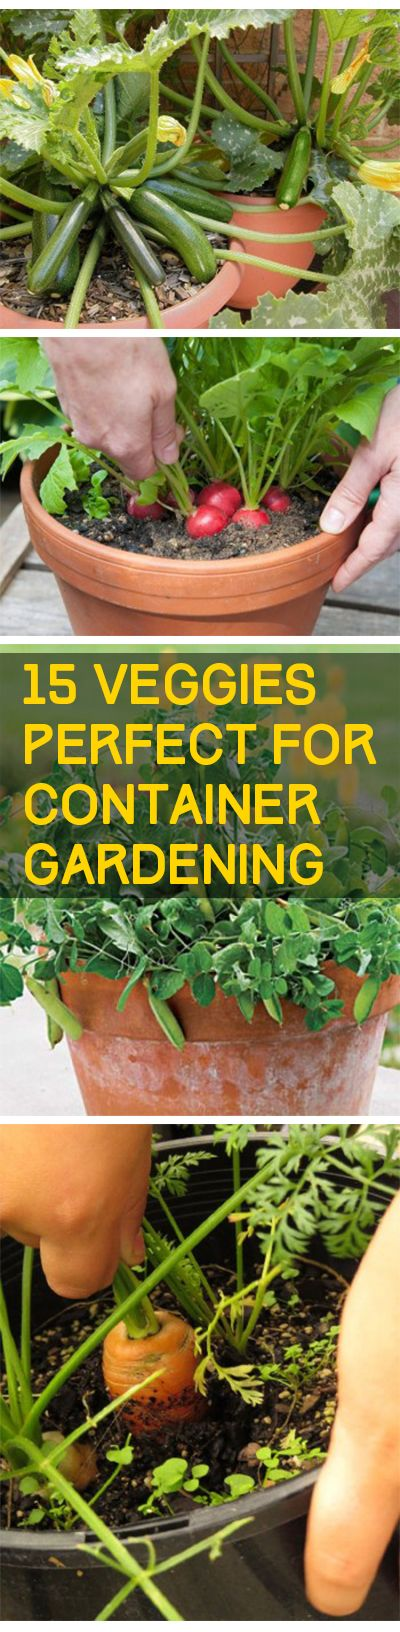 15 veggies perfect for container gardening